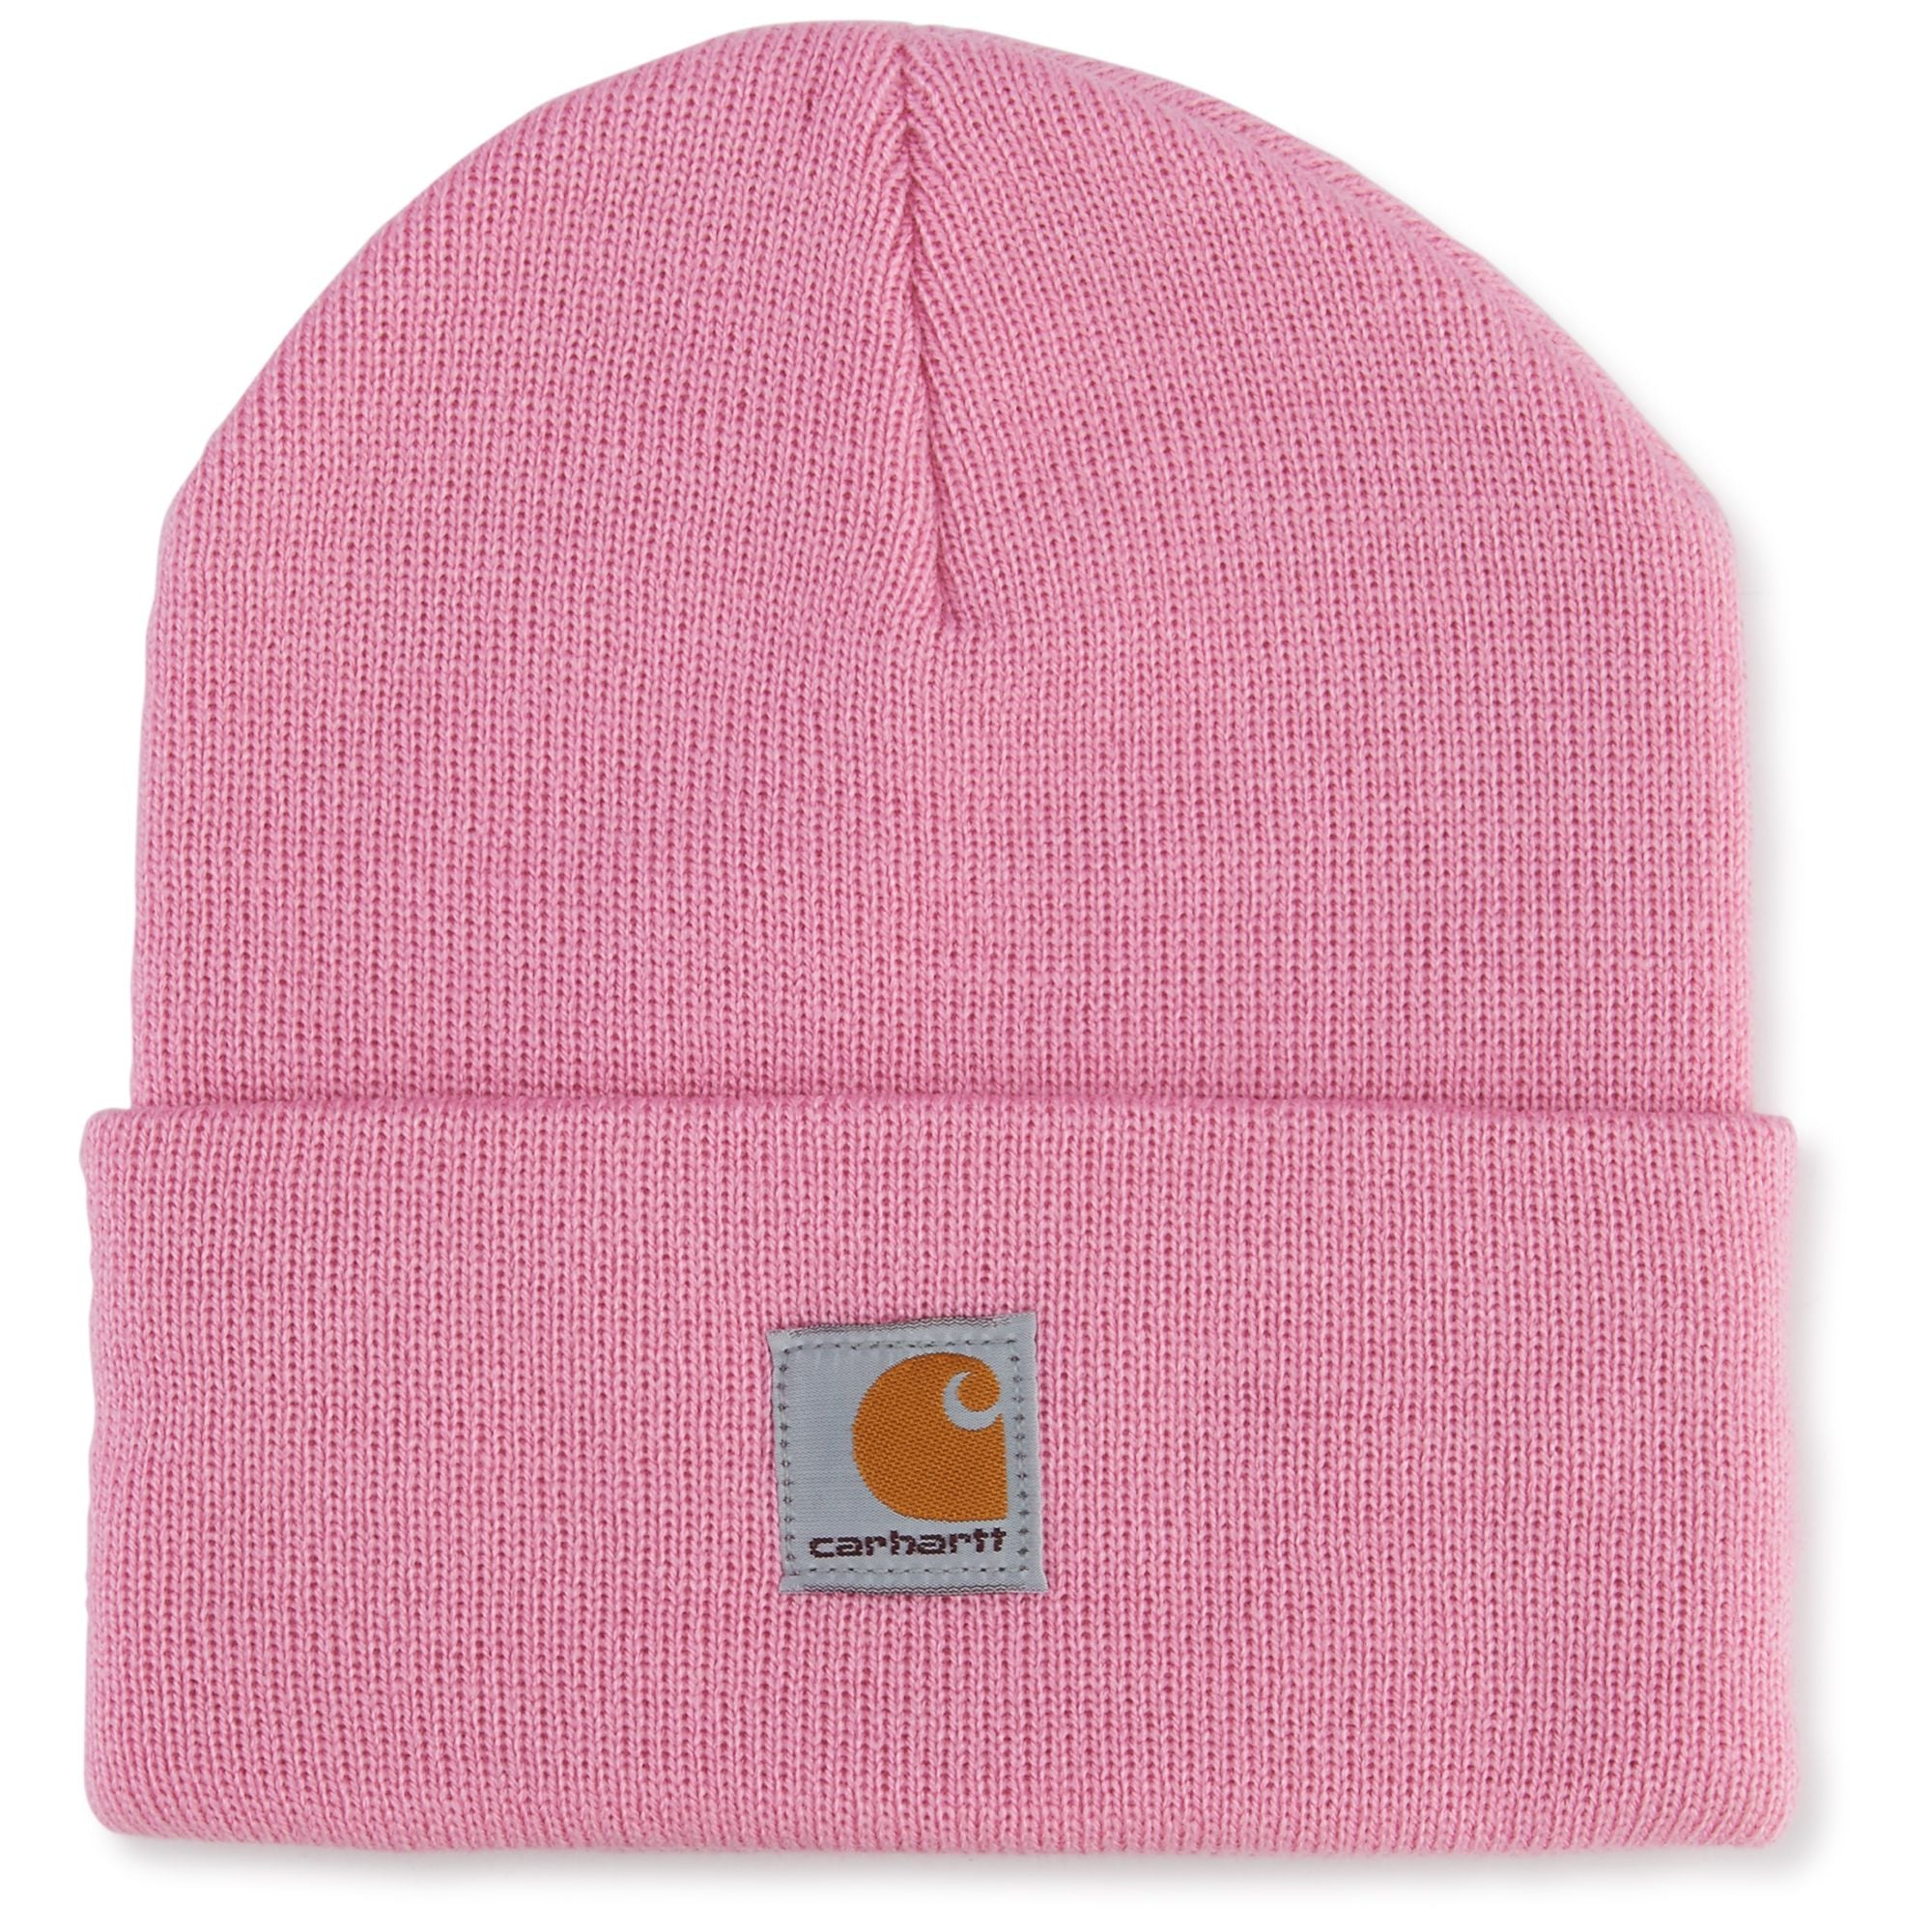 cc44cfbd Carhartt Baby and Toddlers' Knit Watch Hat – Good's Store Online